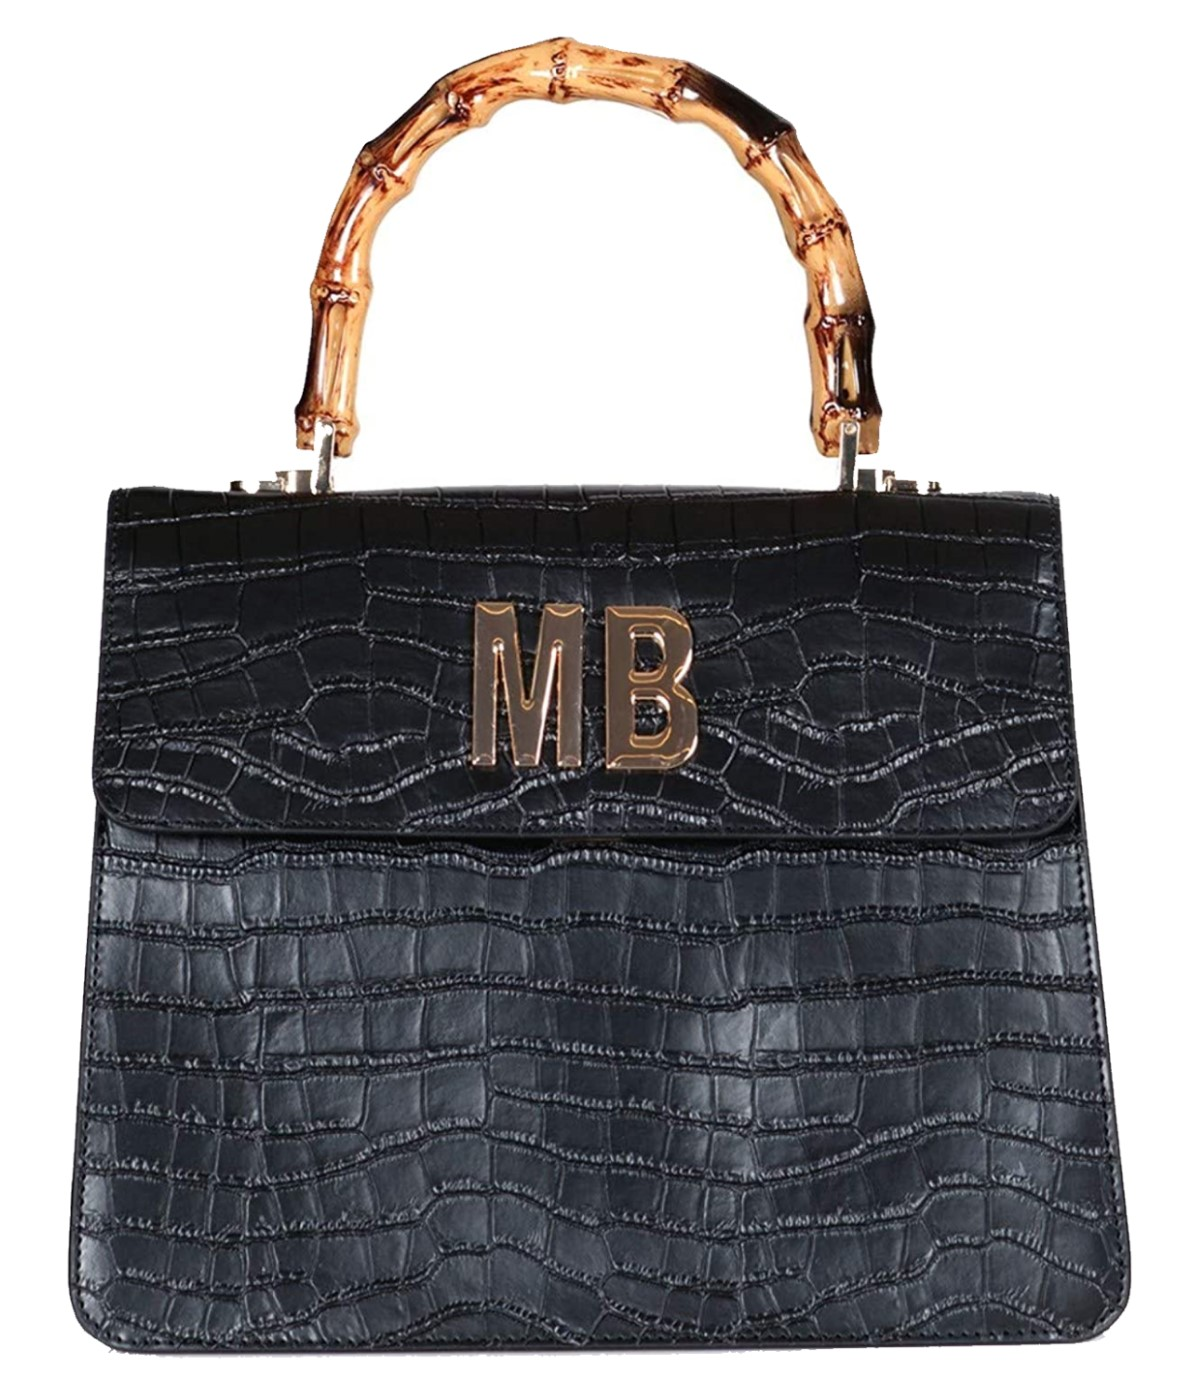 MIA BAG BORSA DONNA NERA DOCTOR BAG IN PELLE